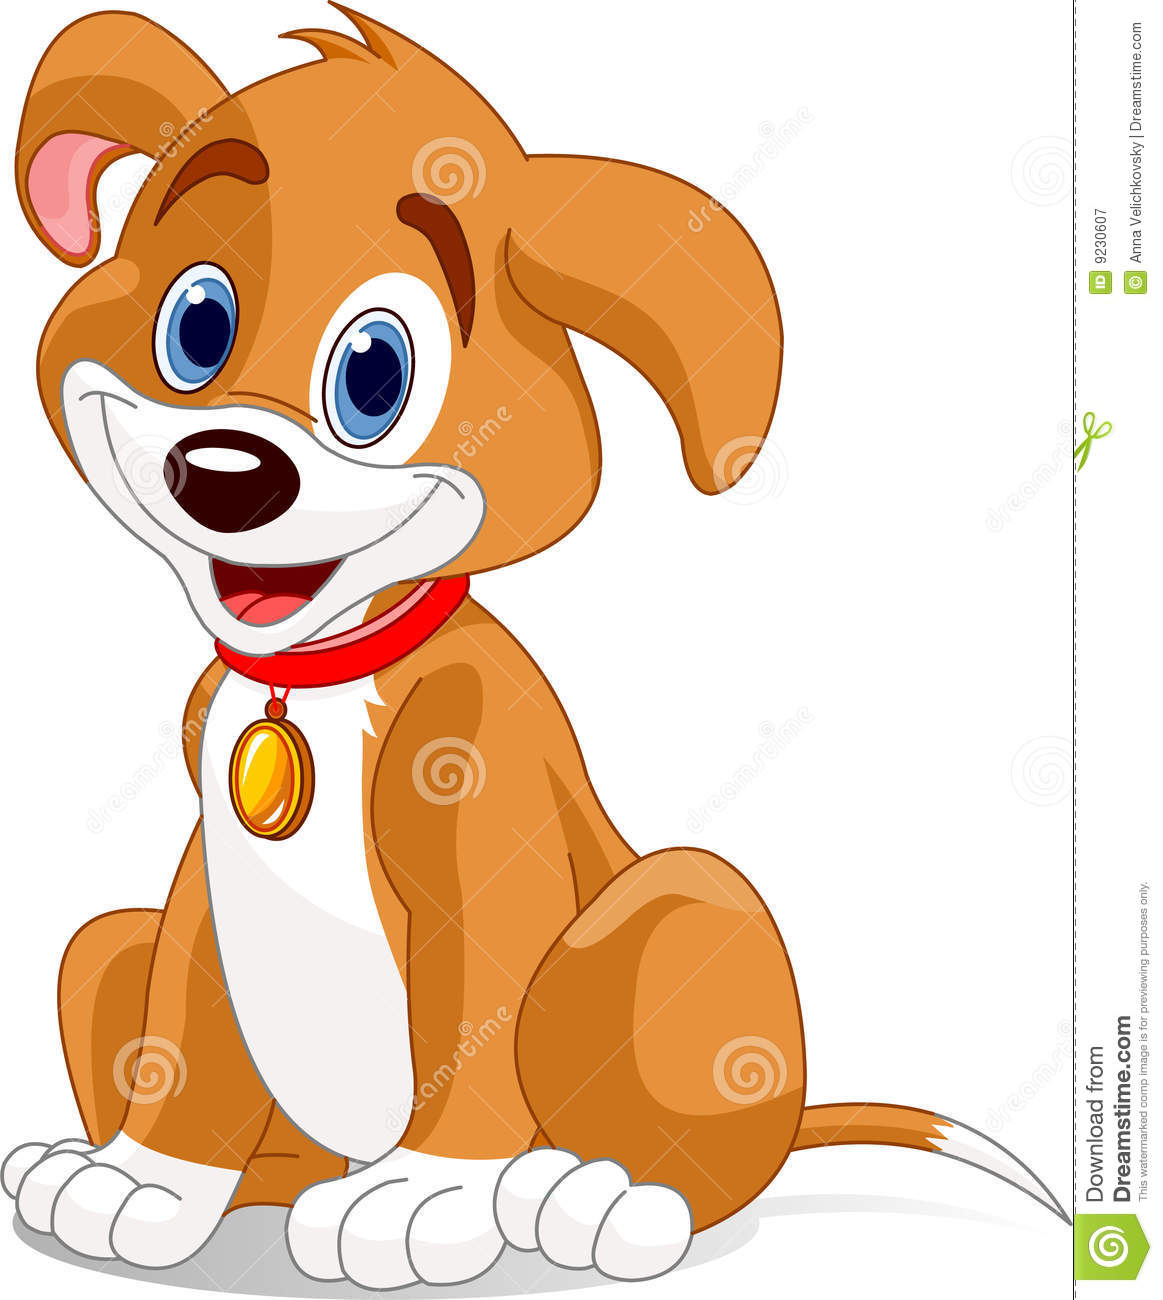 Vector illustration of a cute dog.Wearing a red collar with a dog tag.